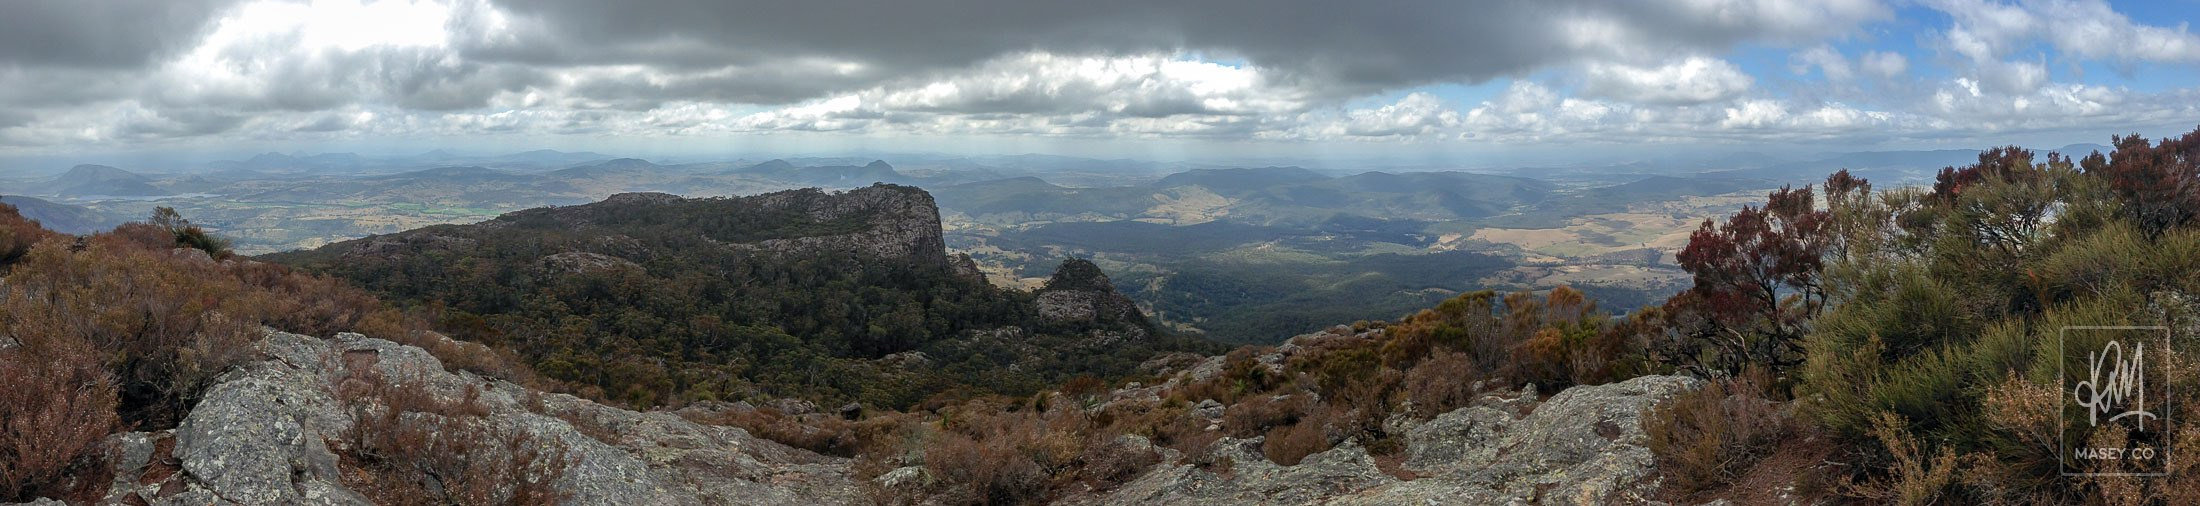 The panoramic views from the top of Mount Maroon are some of the best in South-East Queensland.